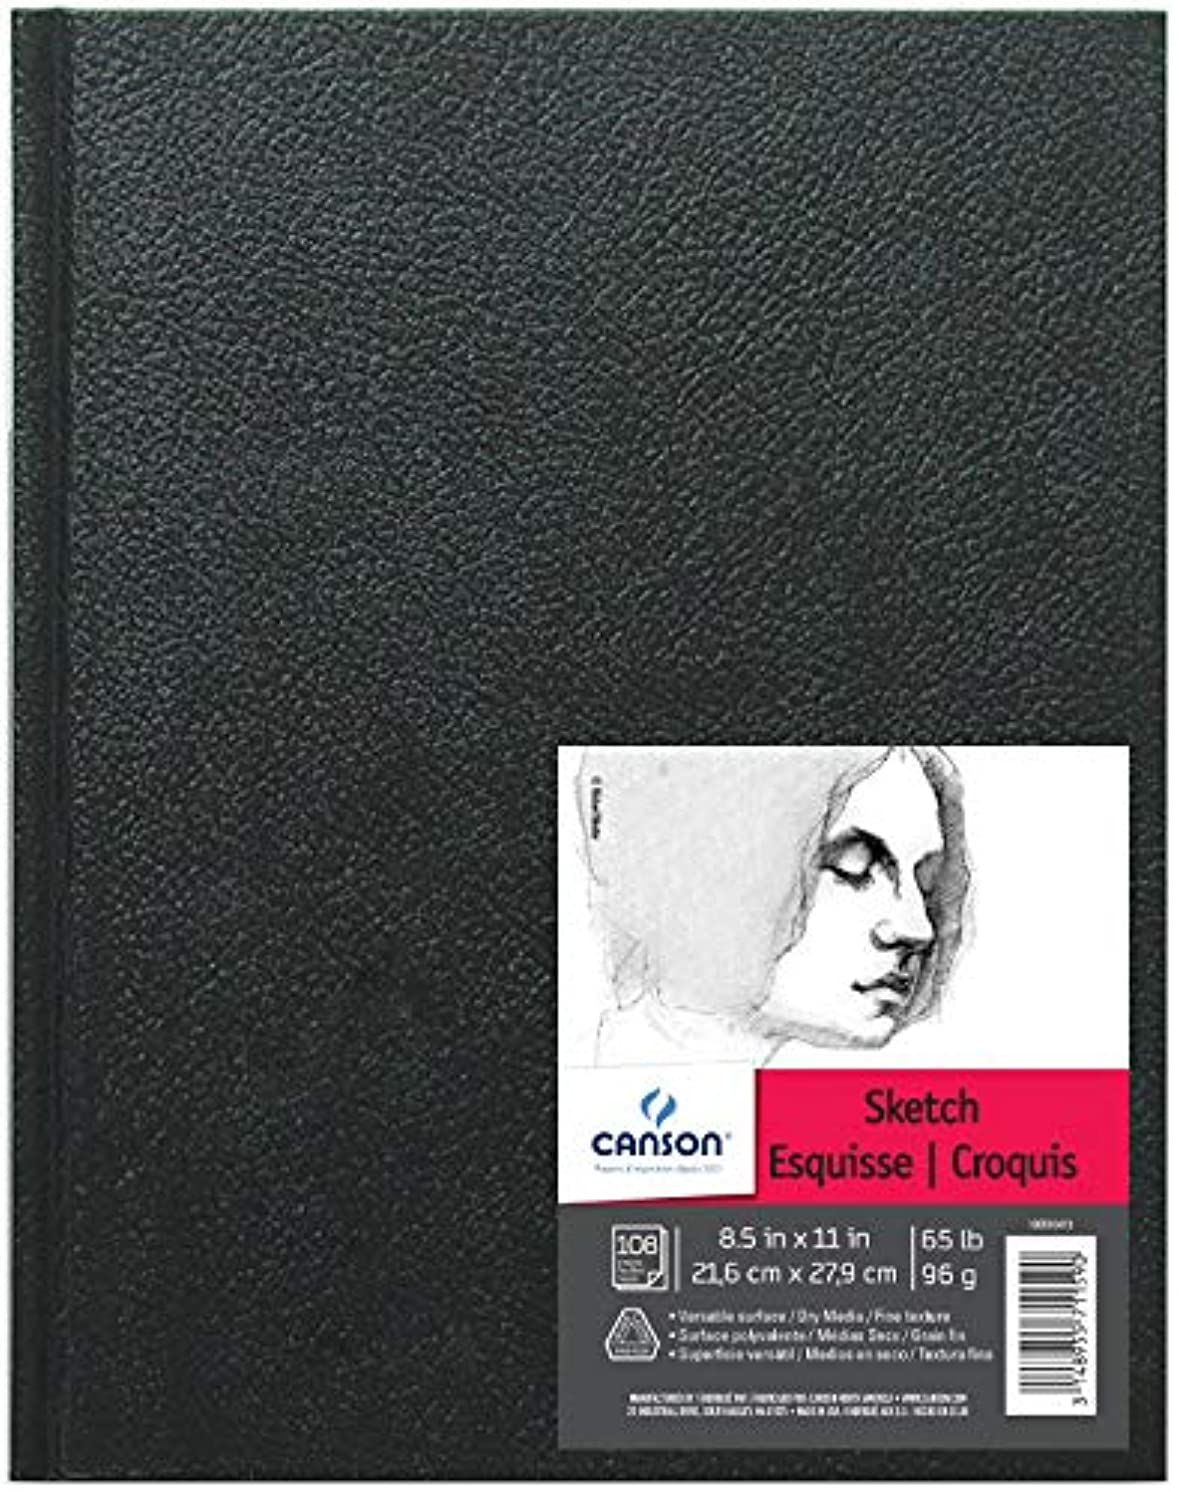 Canson Artist Series Sketch Book Paper Pad, for Pencil and Charcoal, Acid Free, Hardbound, 65 Pound, 8.5 x 11 Inch, 100 Sheets